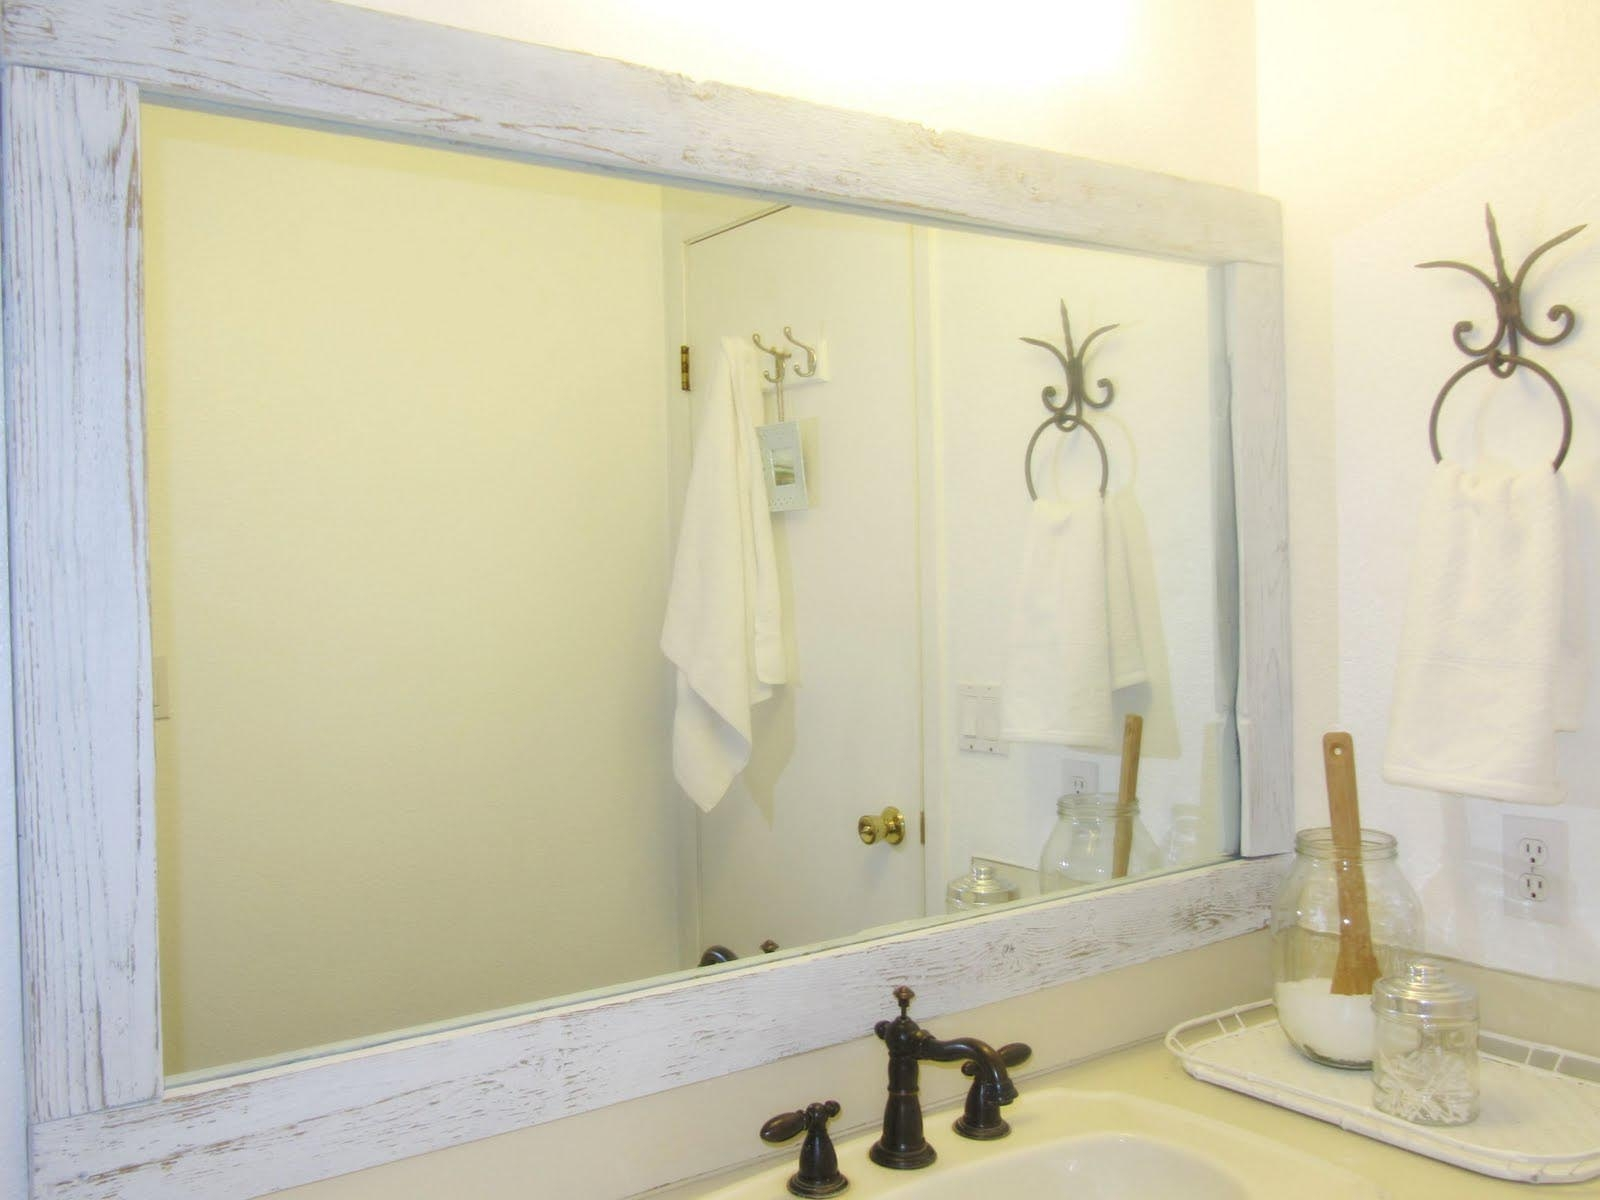 White Wooden Framed Wall Mirrors White Wooden Framed Wall Mirrors large bathroom wall mirror with rustic carbonized pine wood frame 1600 X 1200